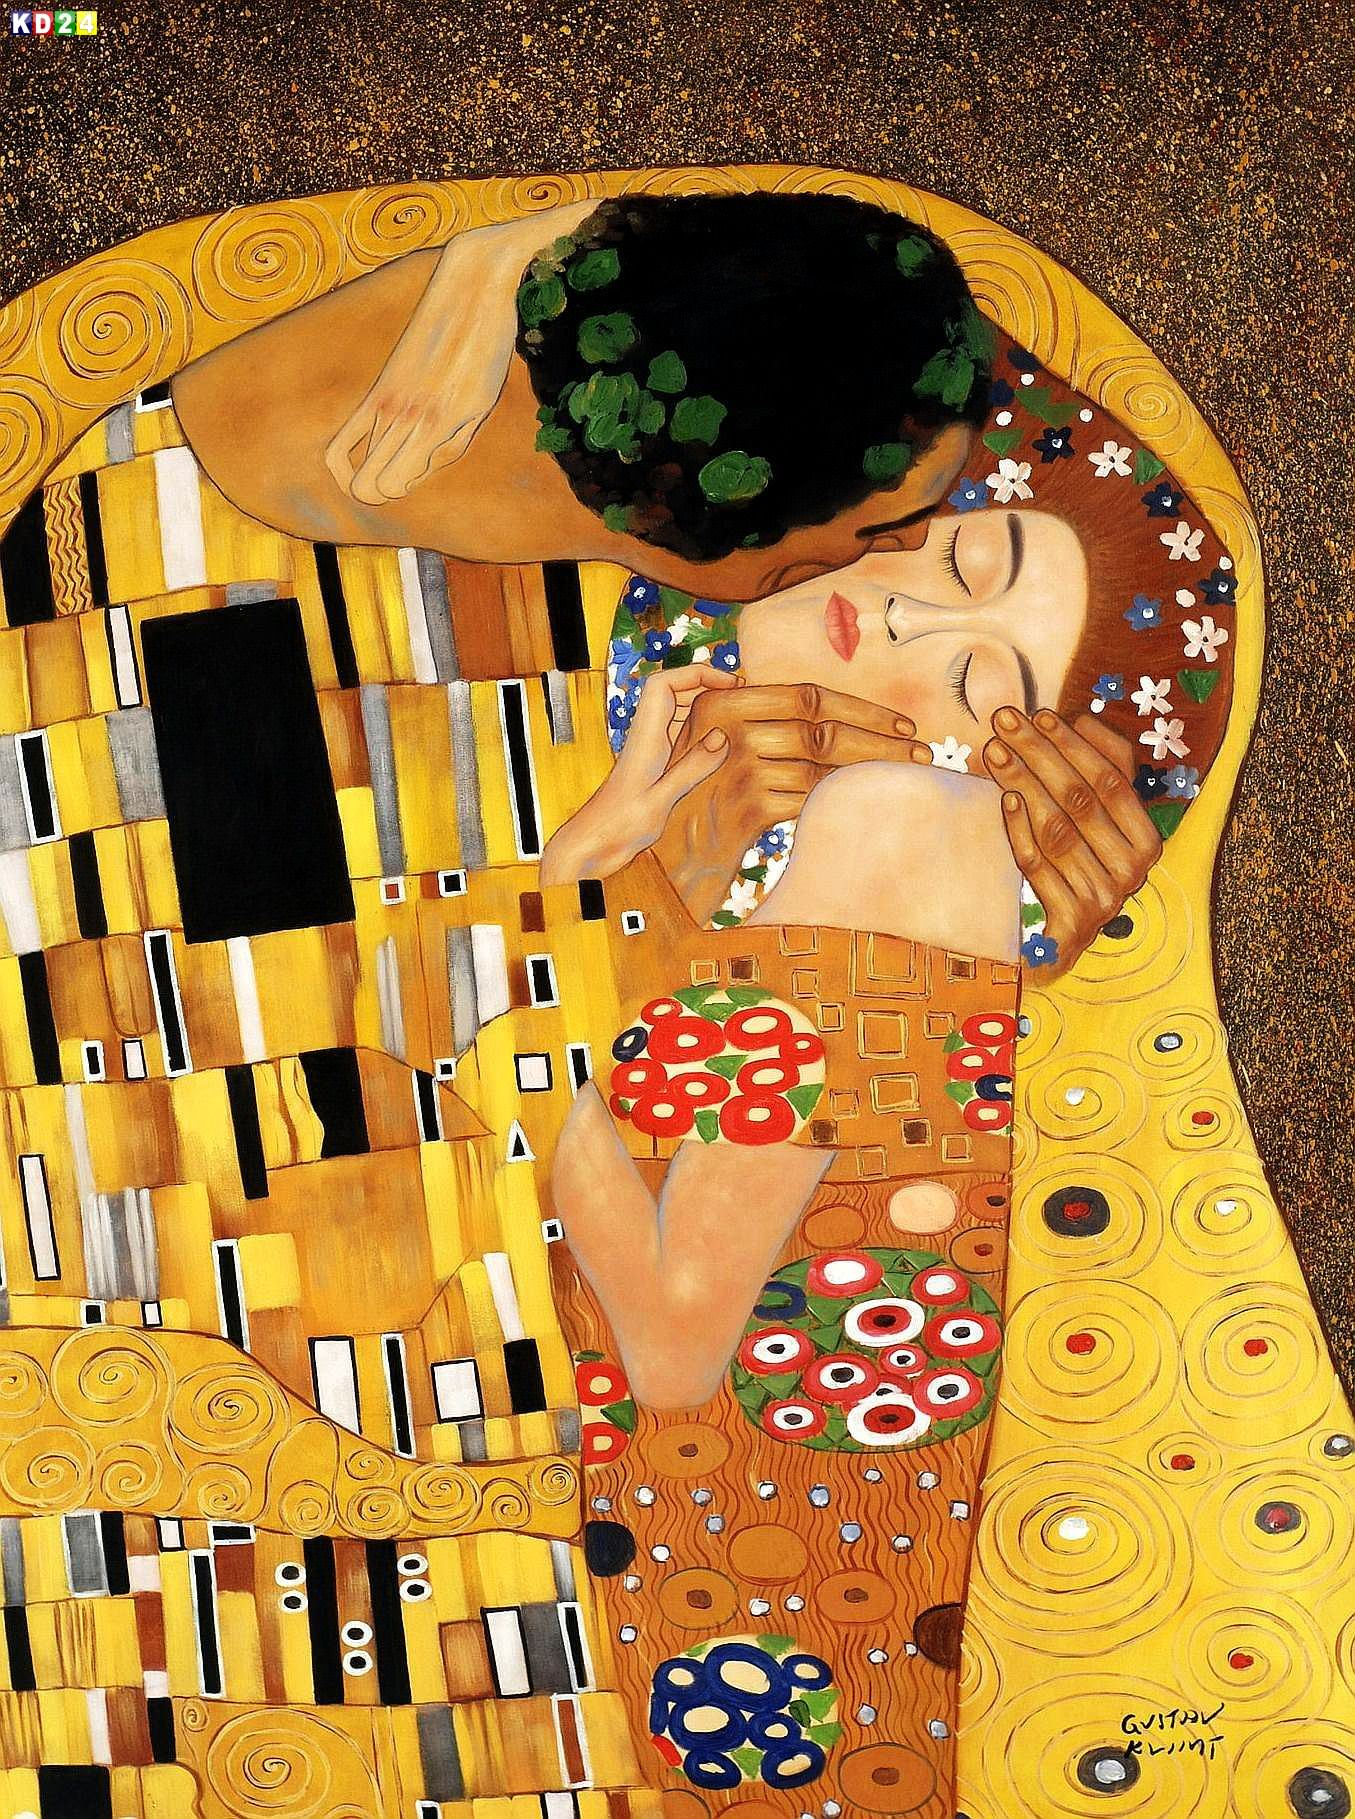 gustav klimt der kuss close up k84500 90x120cm jugendstil lgem lde handgemalt ebay. Black Bedroom Furniture Sets. Home Design Ideas